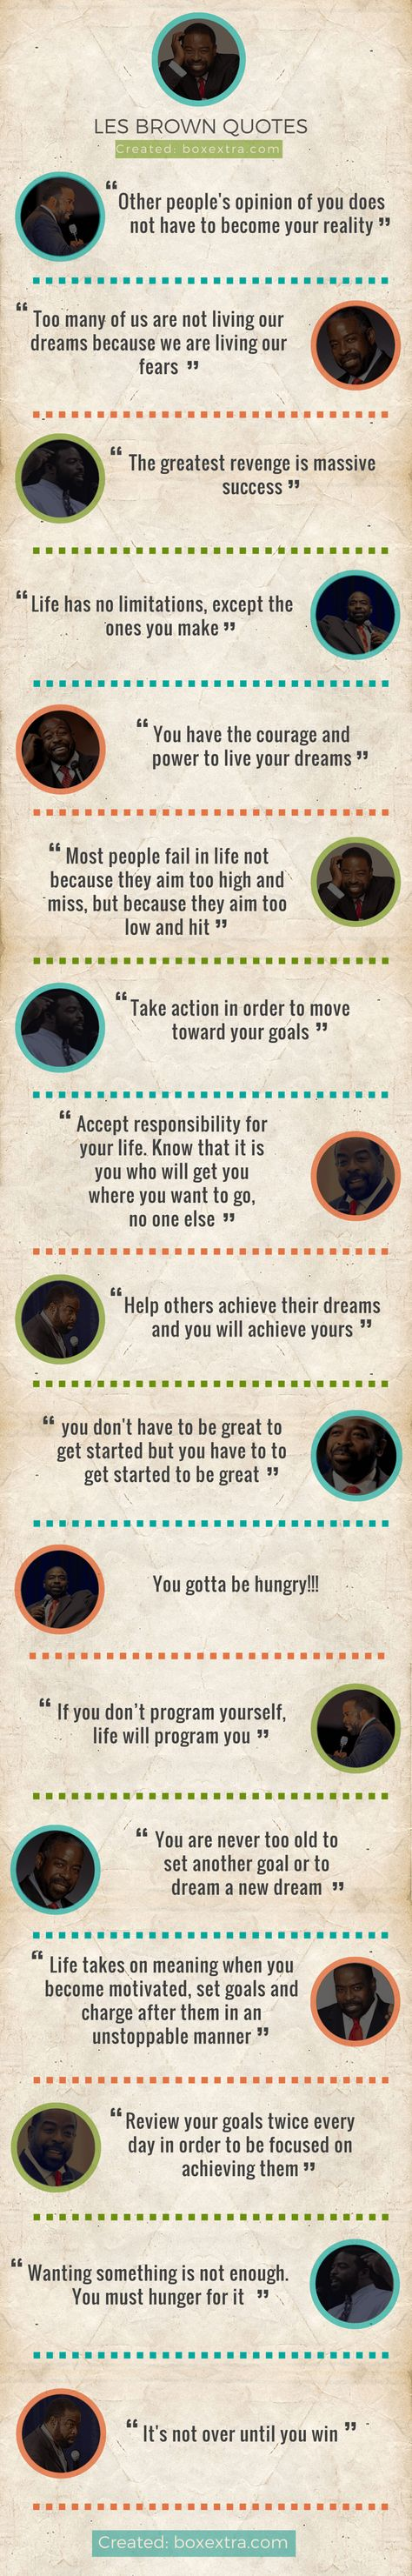 Les Brown Quotes Les Brown Quotes  Les Brown Les Brown Quotes And Forgiveness Quotes